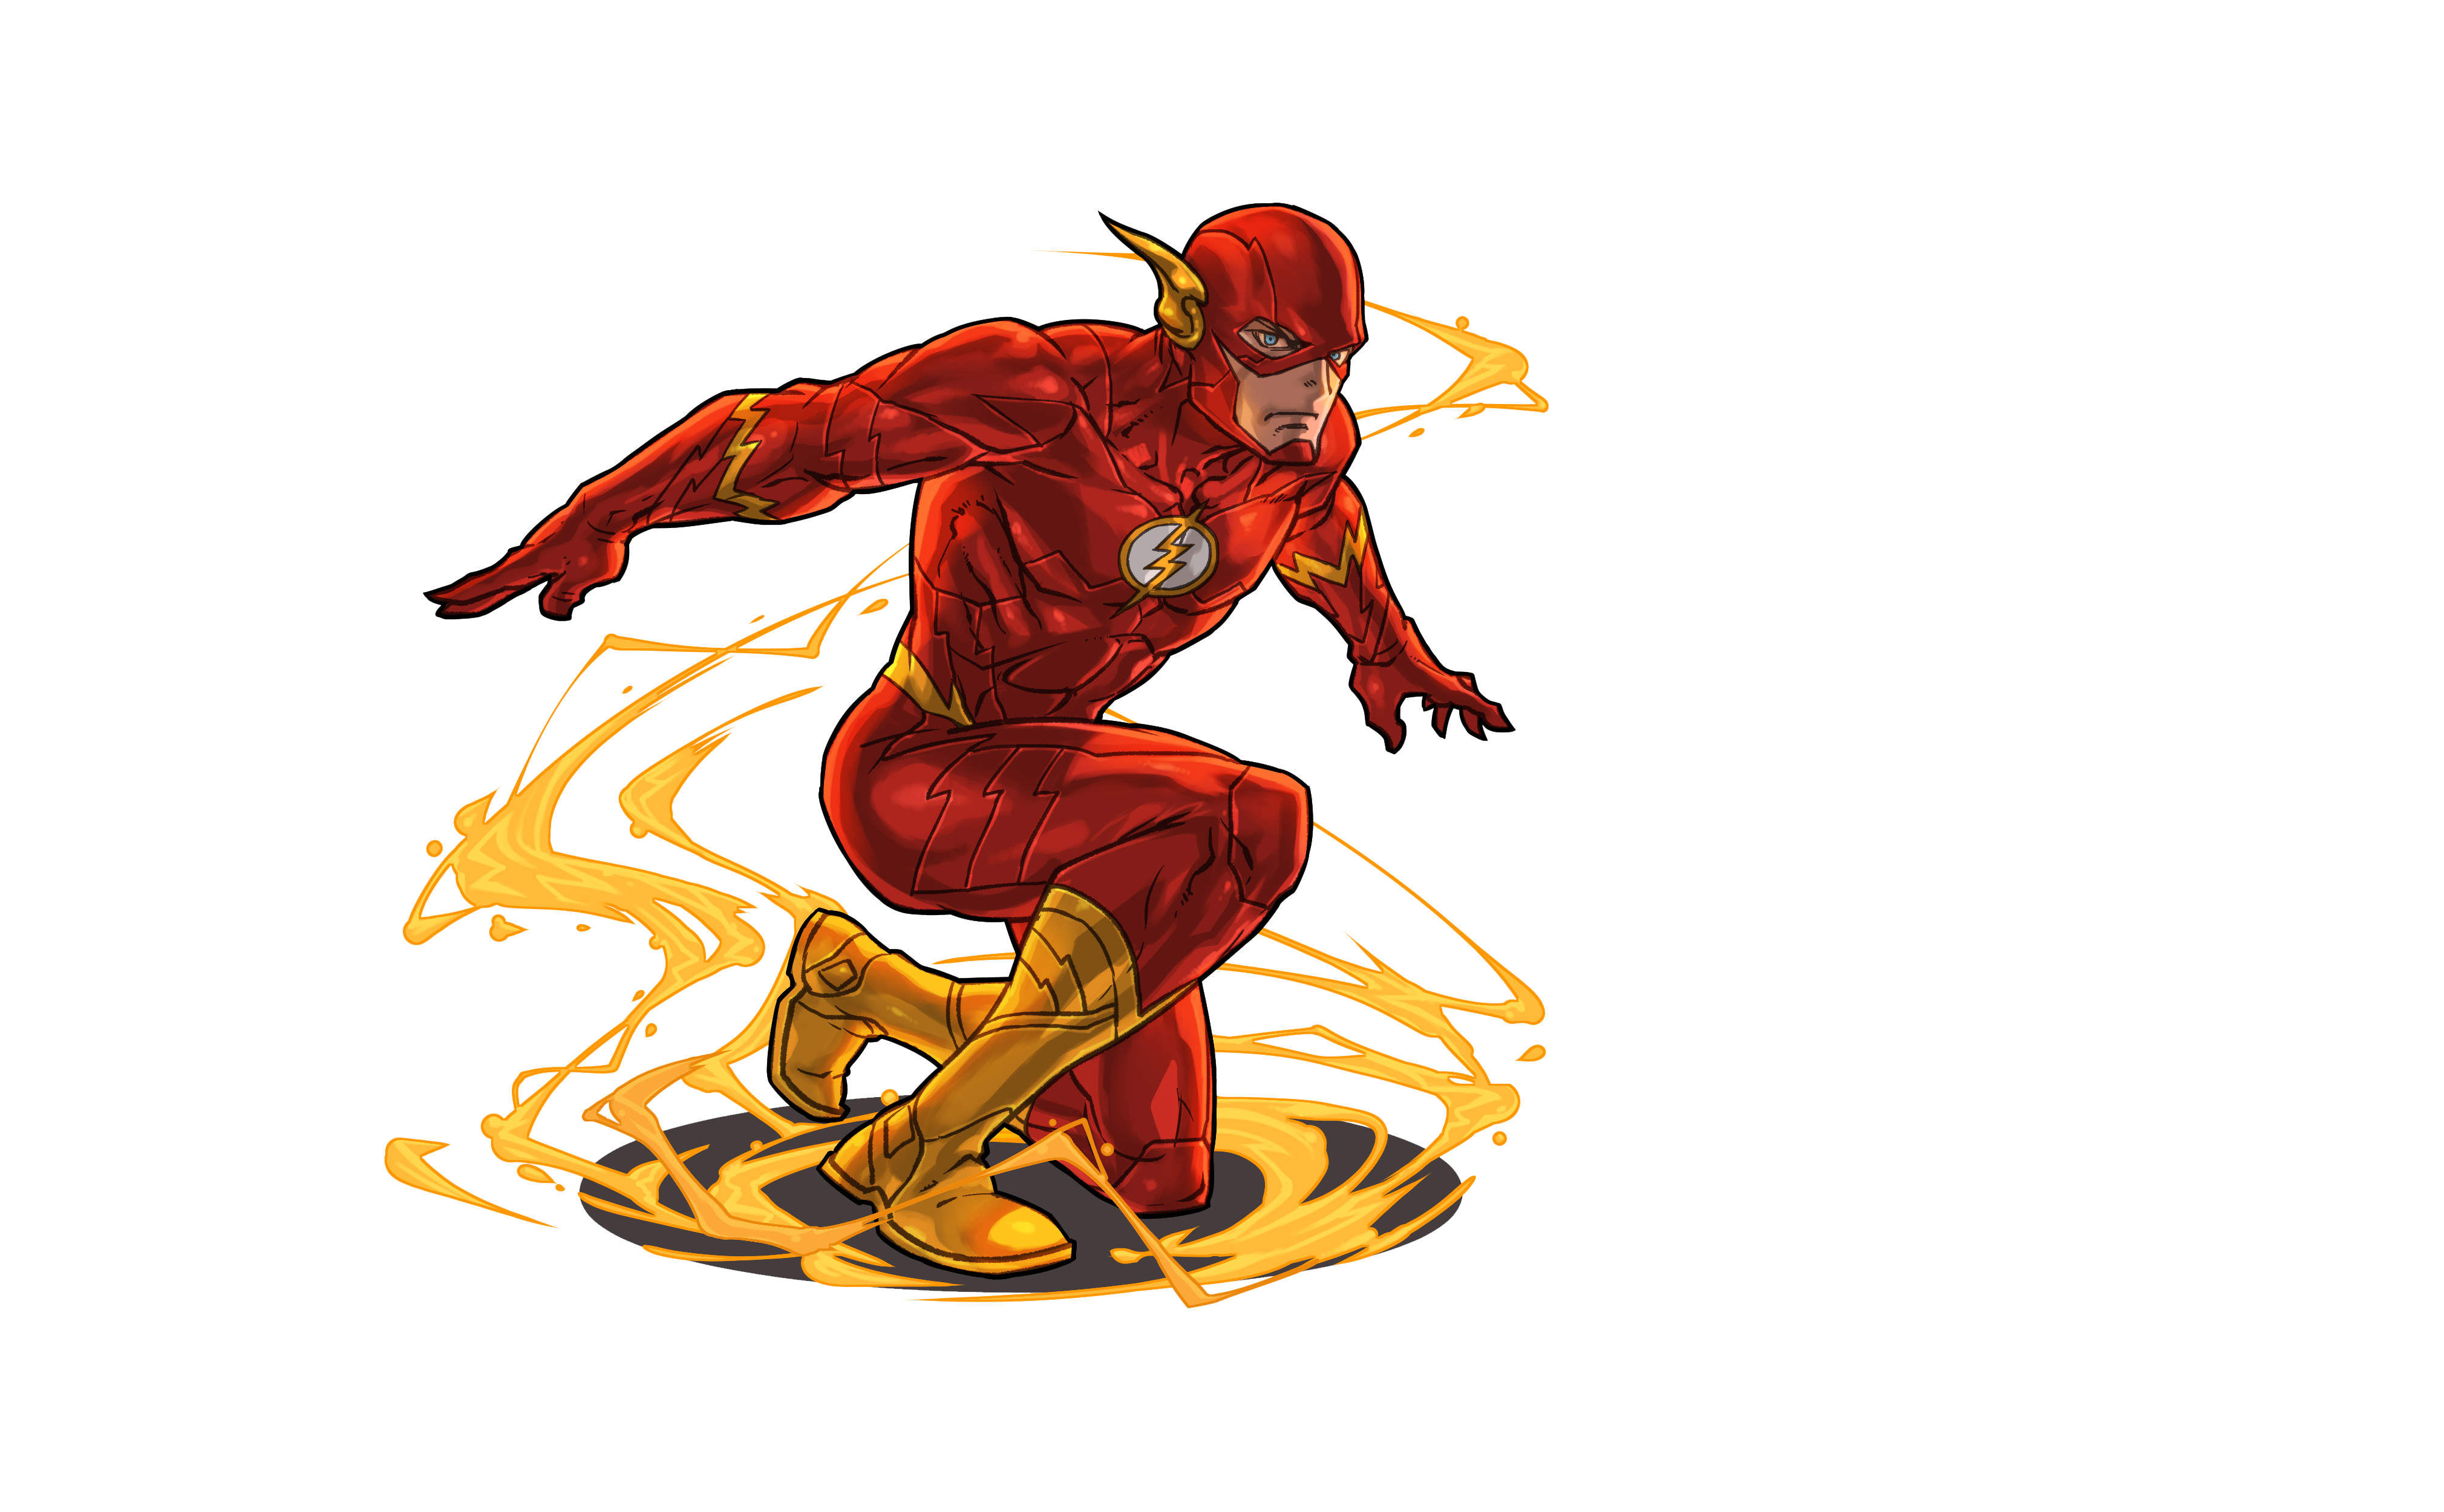 Flash cartoon png. The images a superhero